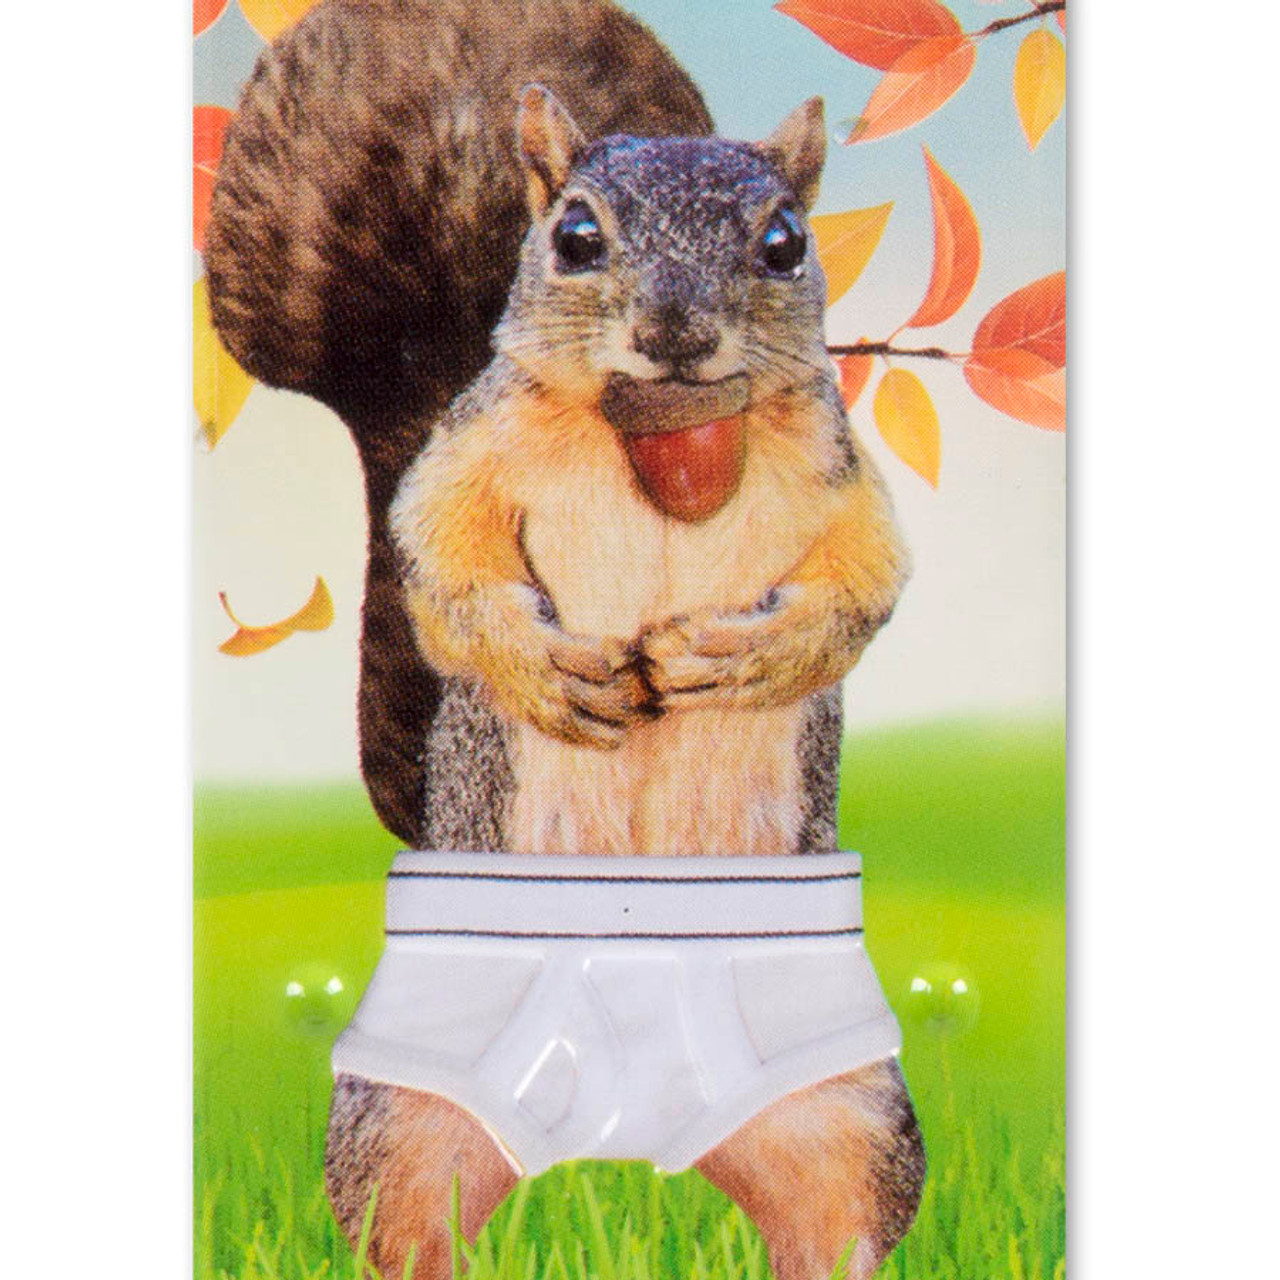 Squirrel in Underpants Mints